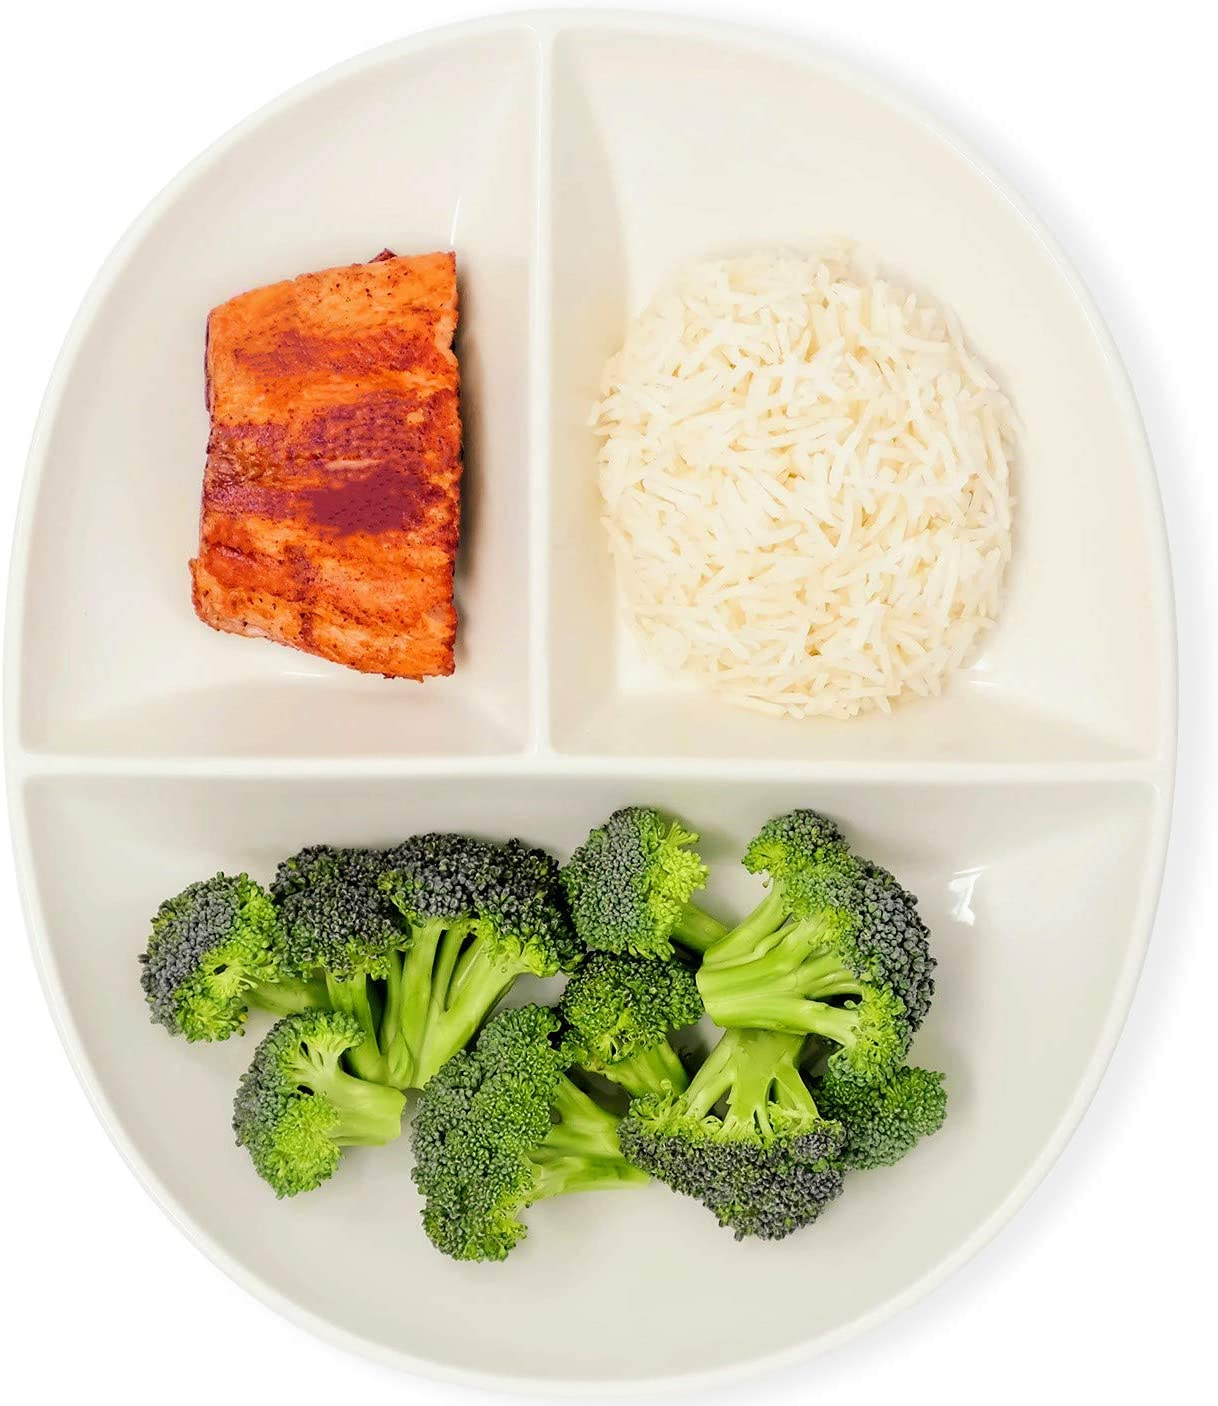 Portion Control Plate for Healthy Eating & Weight Loss | Divided Porcelain Dinner Plate for Adults & Kids (2)